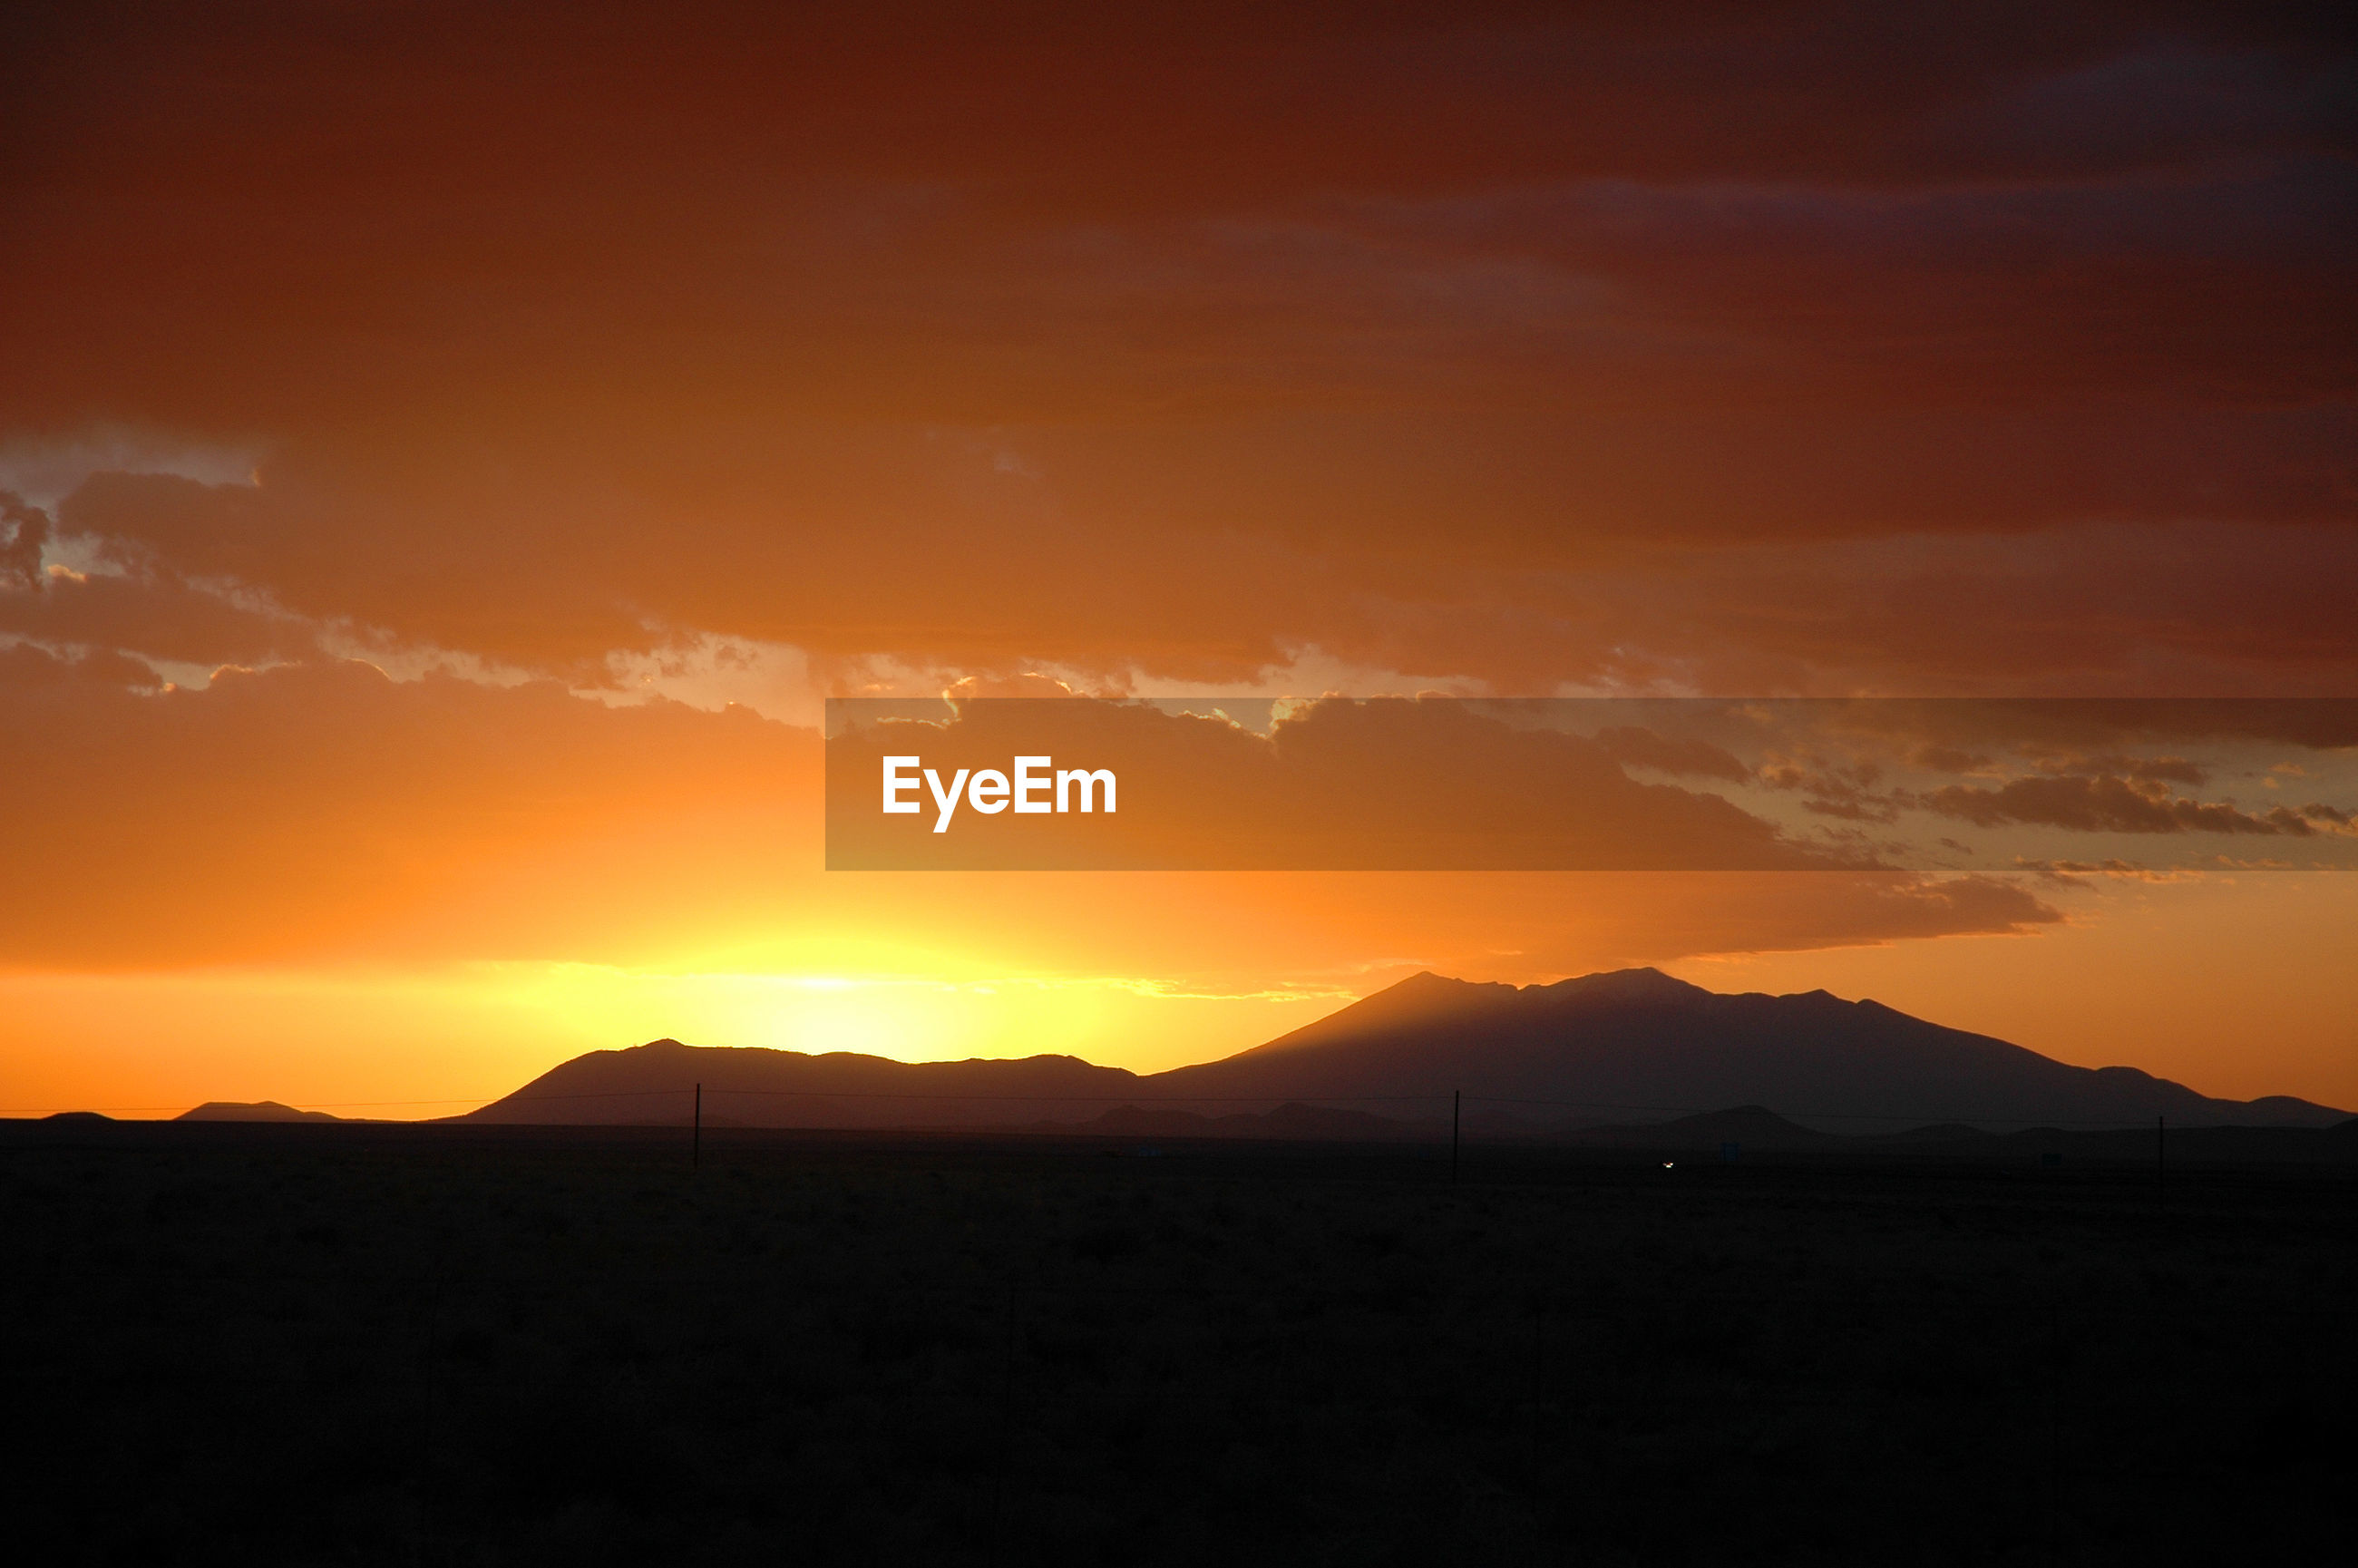 SCENIC VIEW OF SILHOUETTE MOUNTAINS AGAINST ROMANTIC SKY